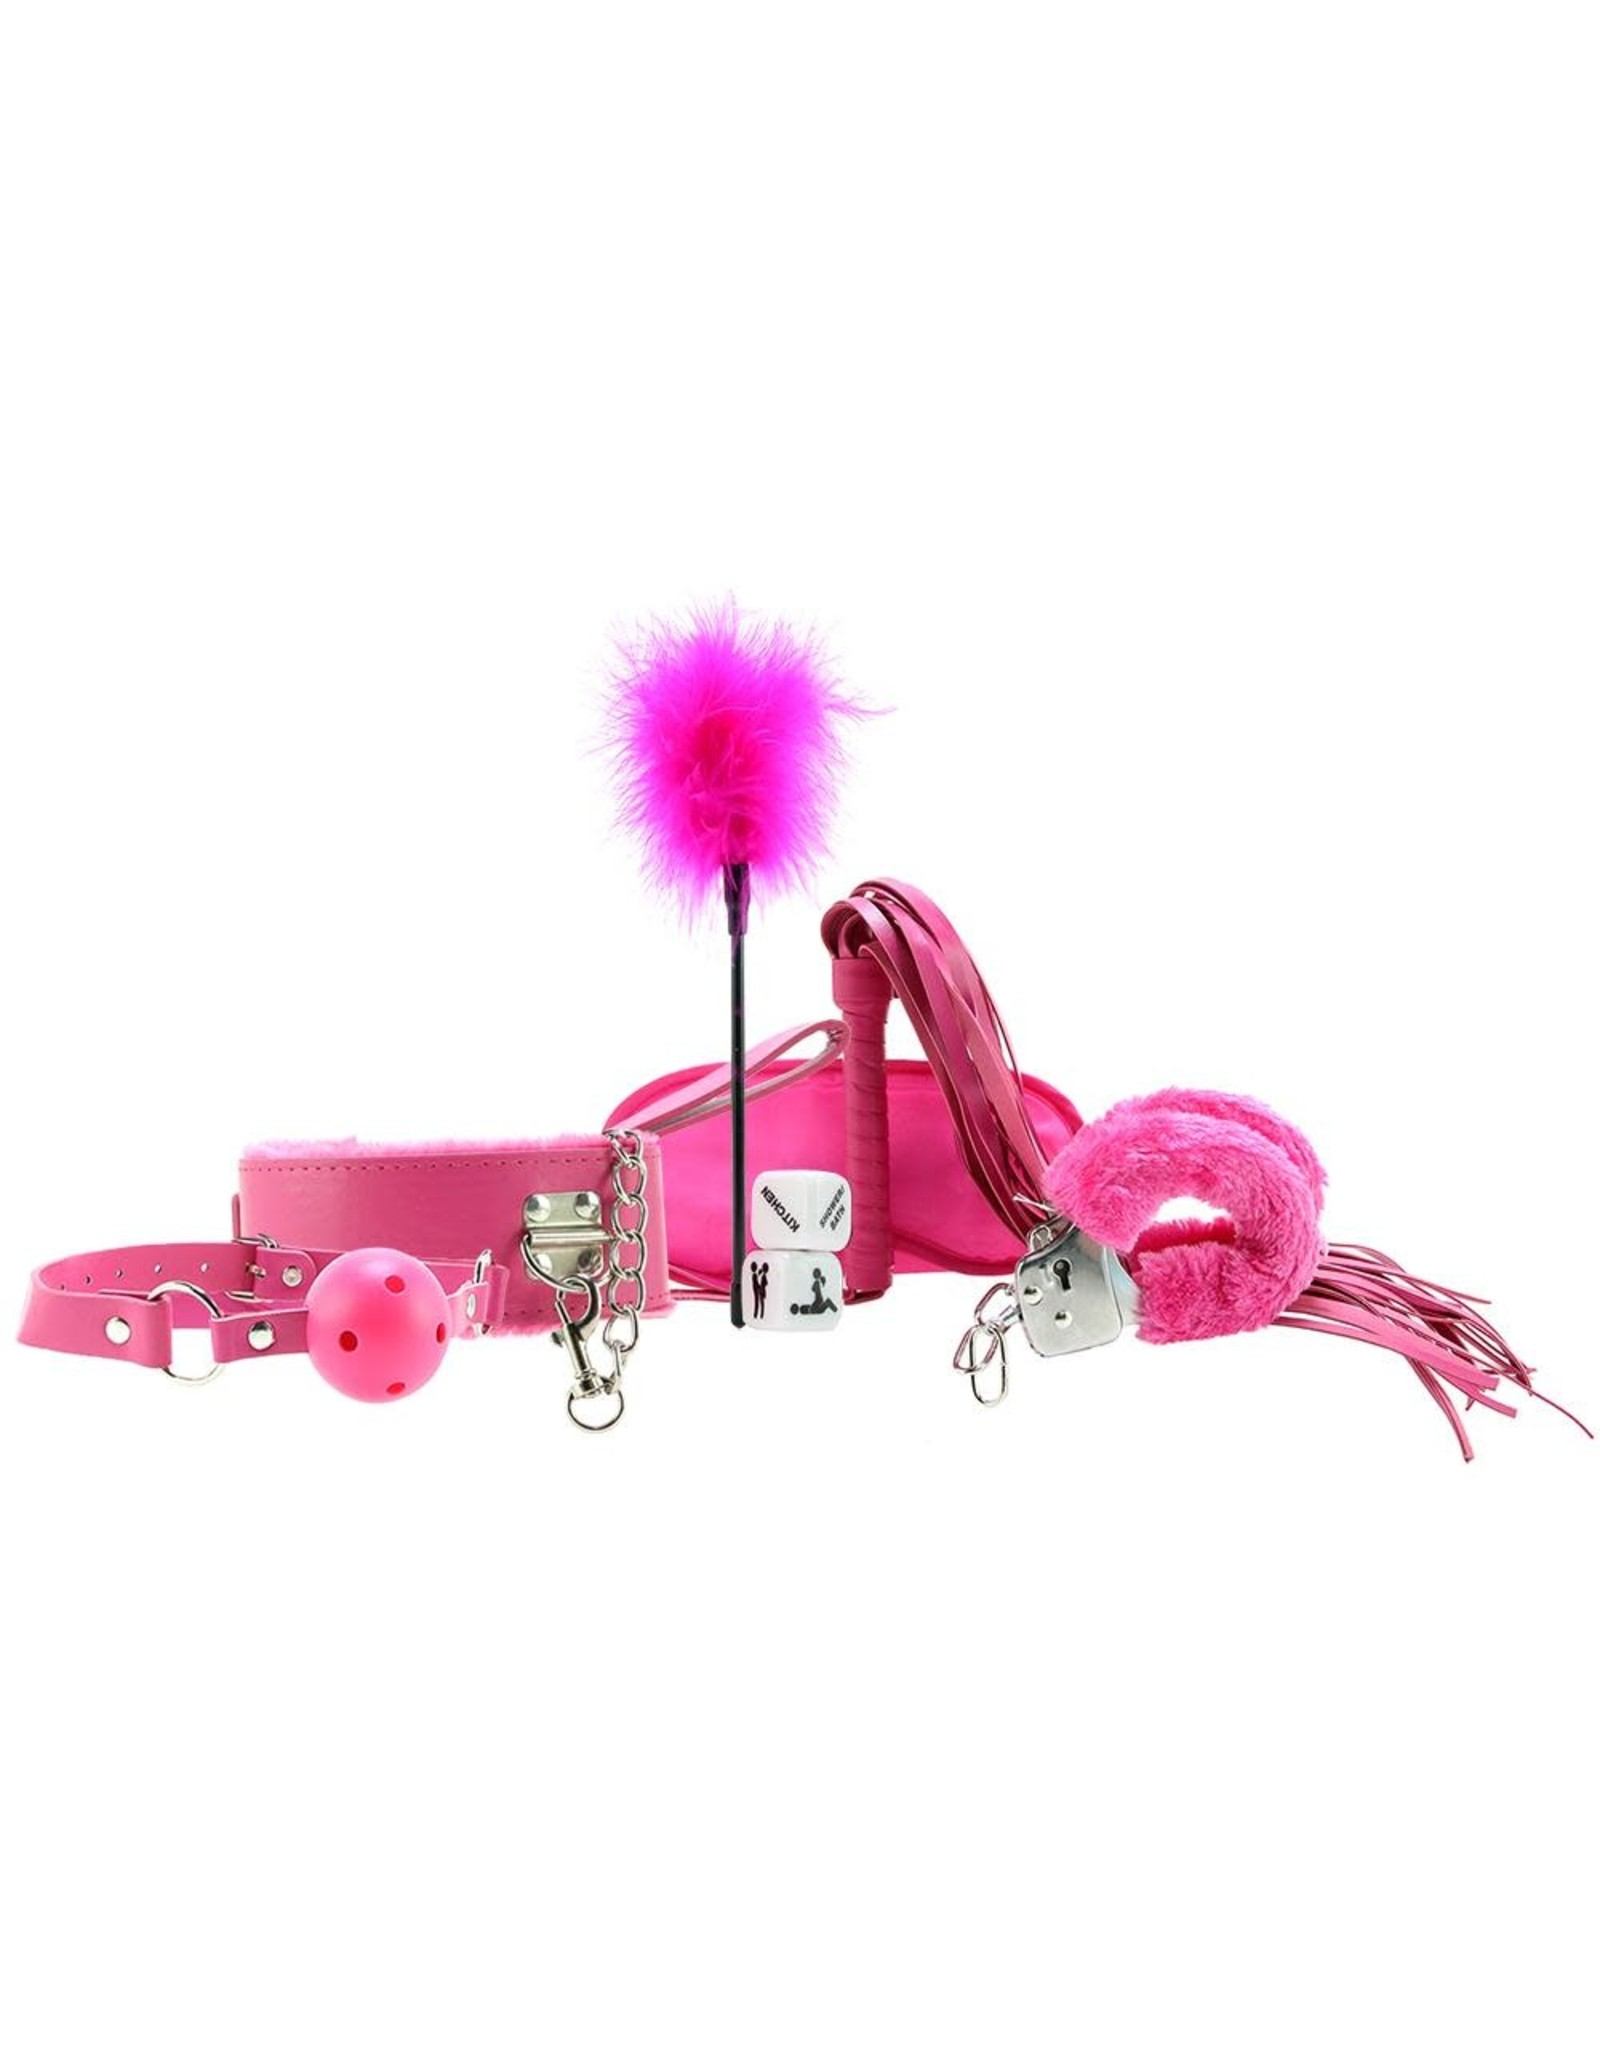 OUCH! - INTRODUCTORY BONDAGE KIT #6 - PINK